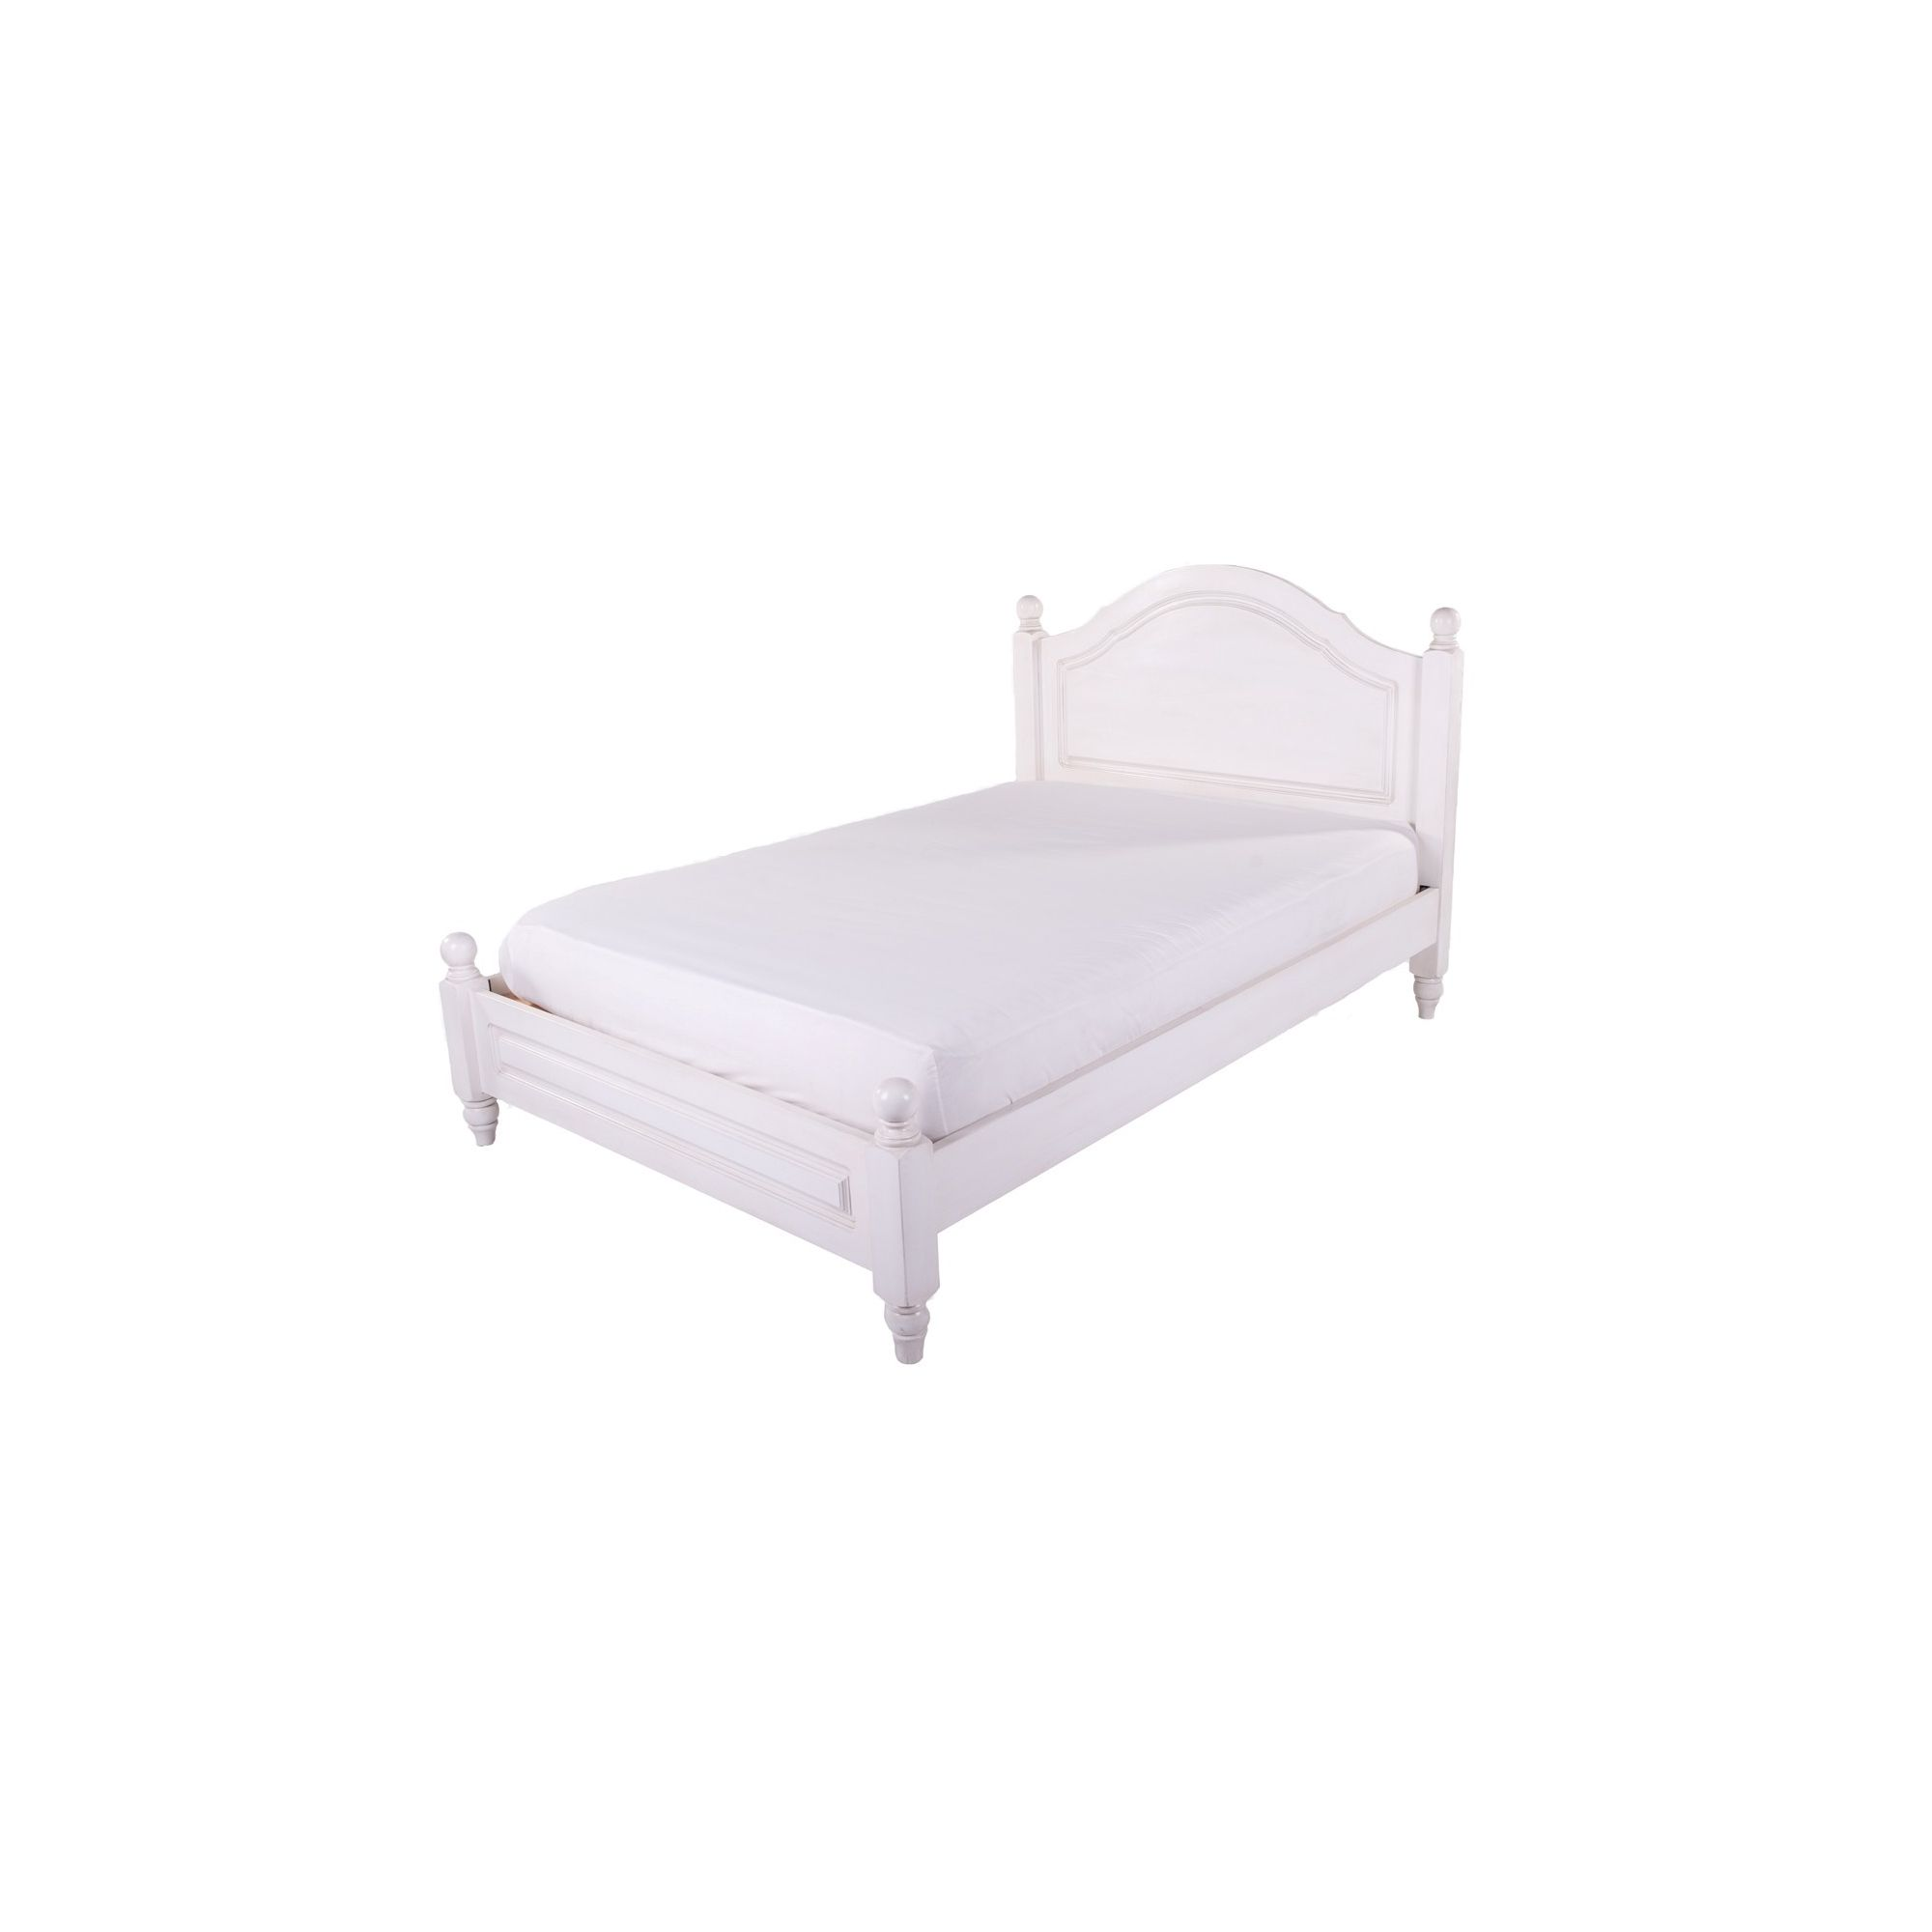 Thorndon Brittany Bed Frame - Double at Tesco Direct